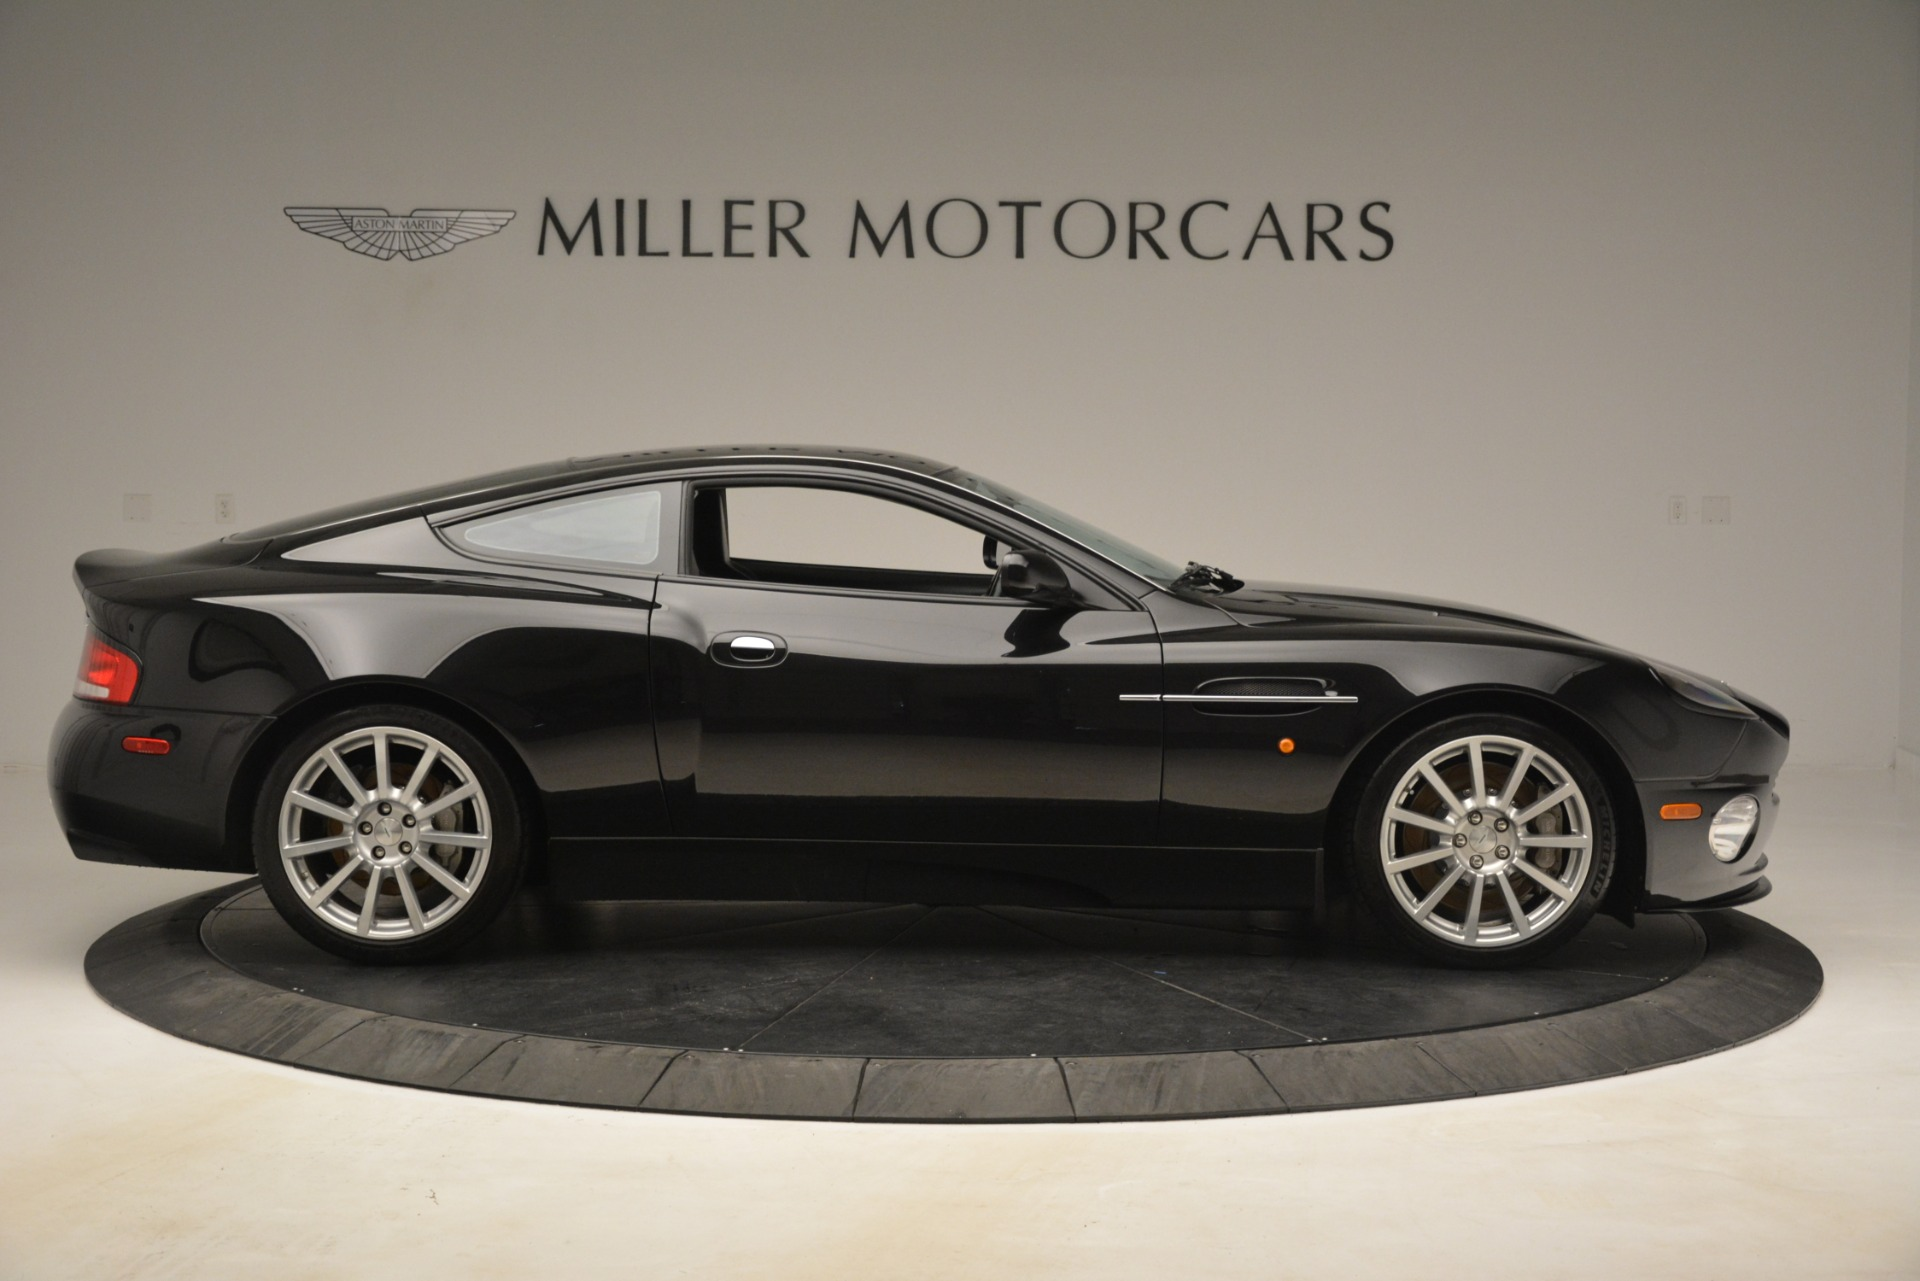 Used 2005 Aston Martin V12 Vanquish S Coupe For Sale In Greenwich, CT 3218_p9